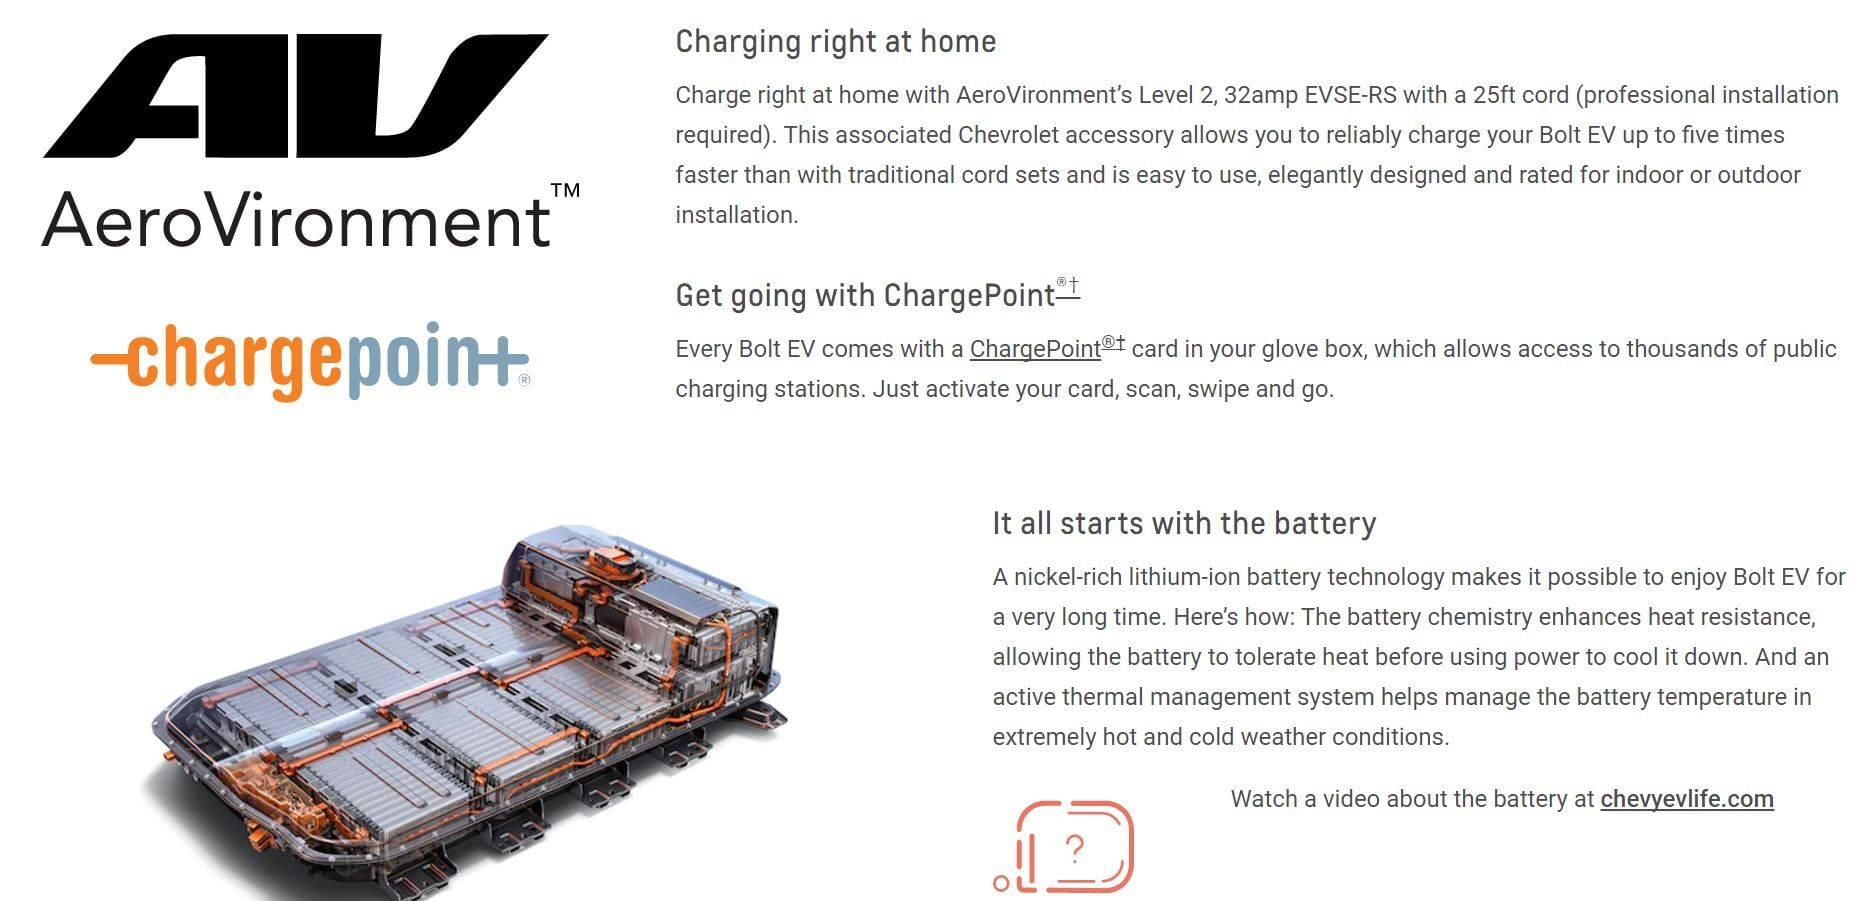 Charging and Battery Information